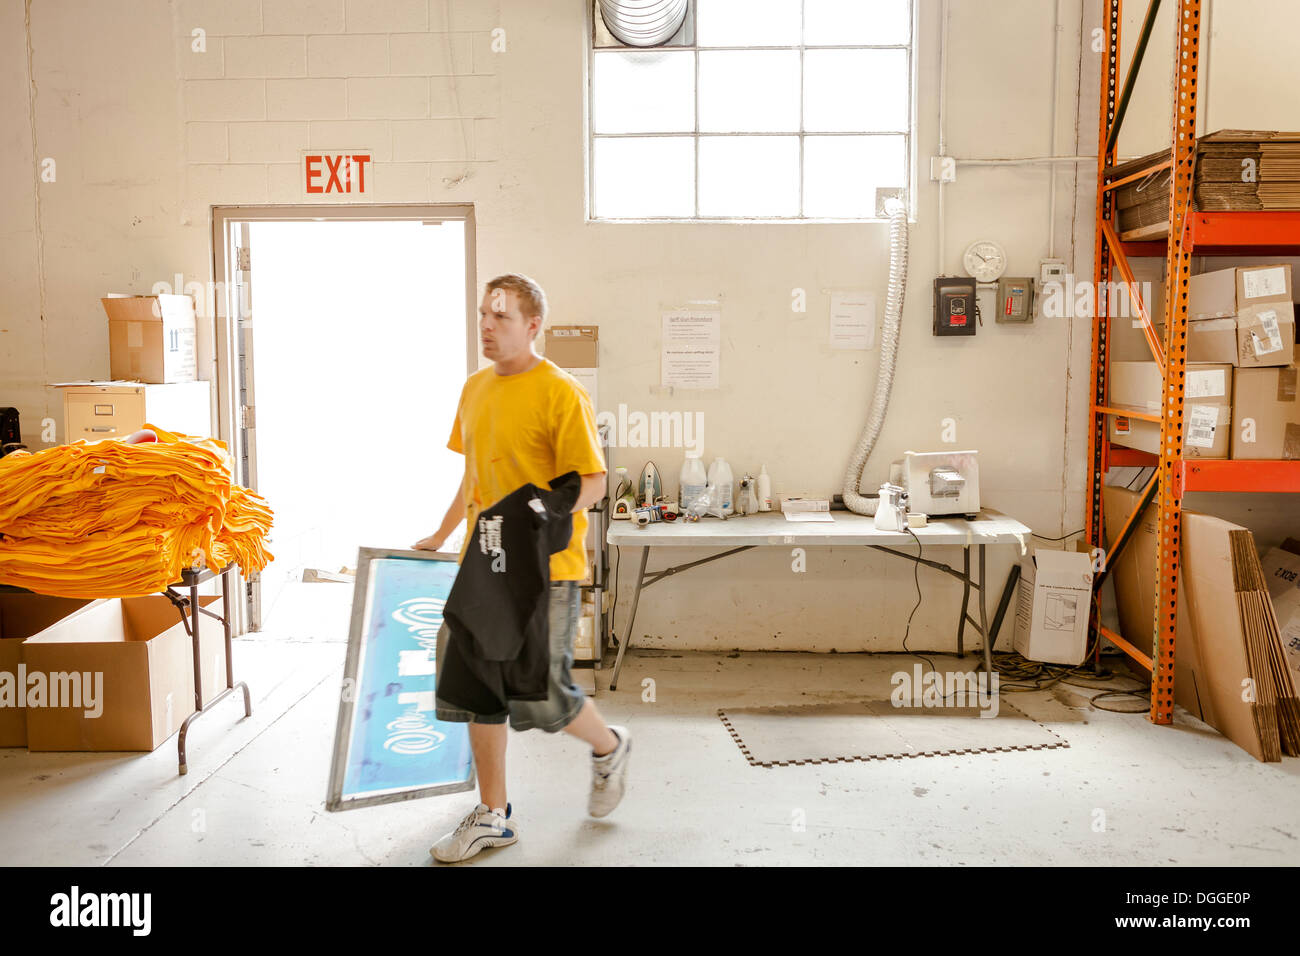 Worker carrying frame and t-shirt in screen printing workshop - Stock Image